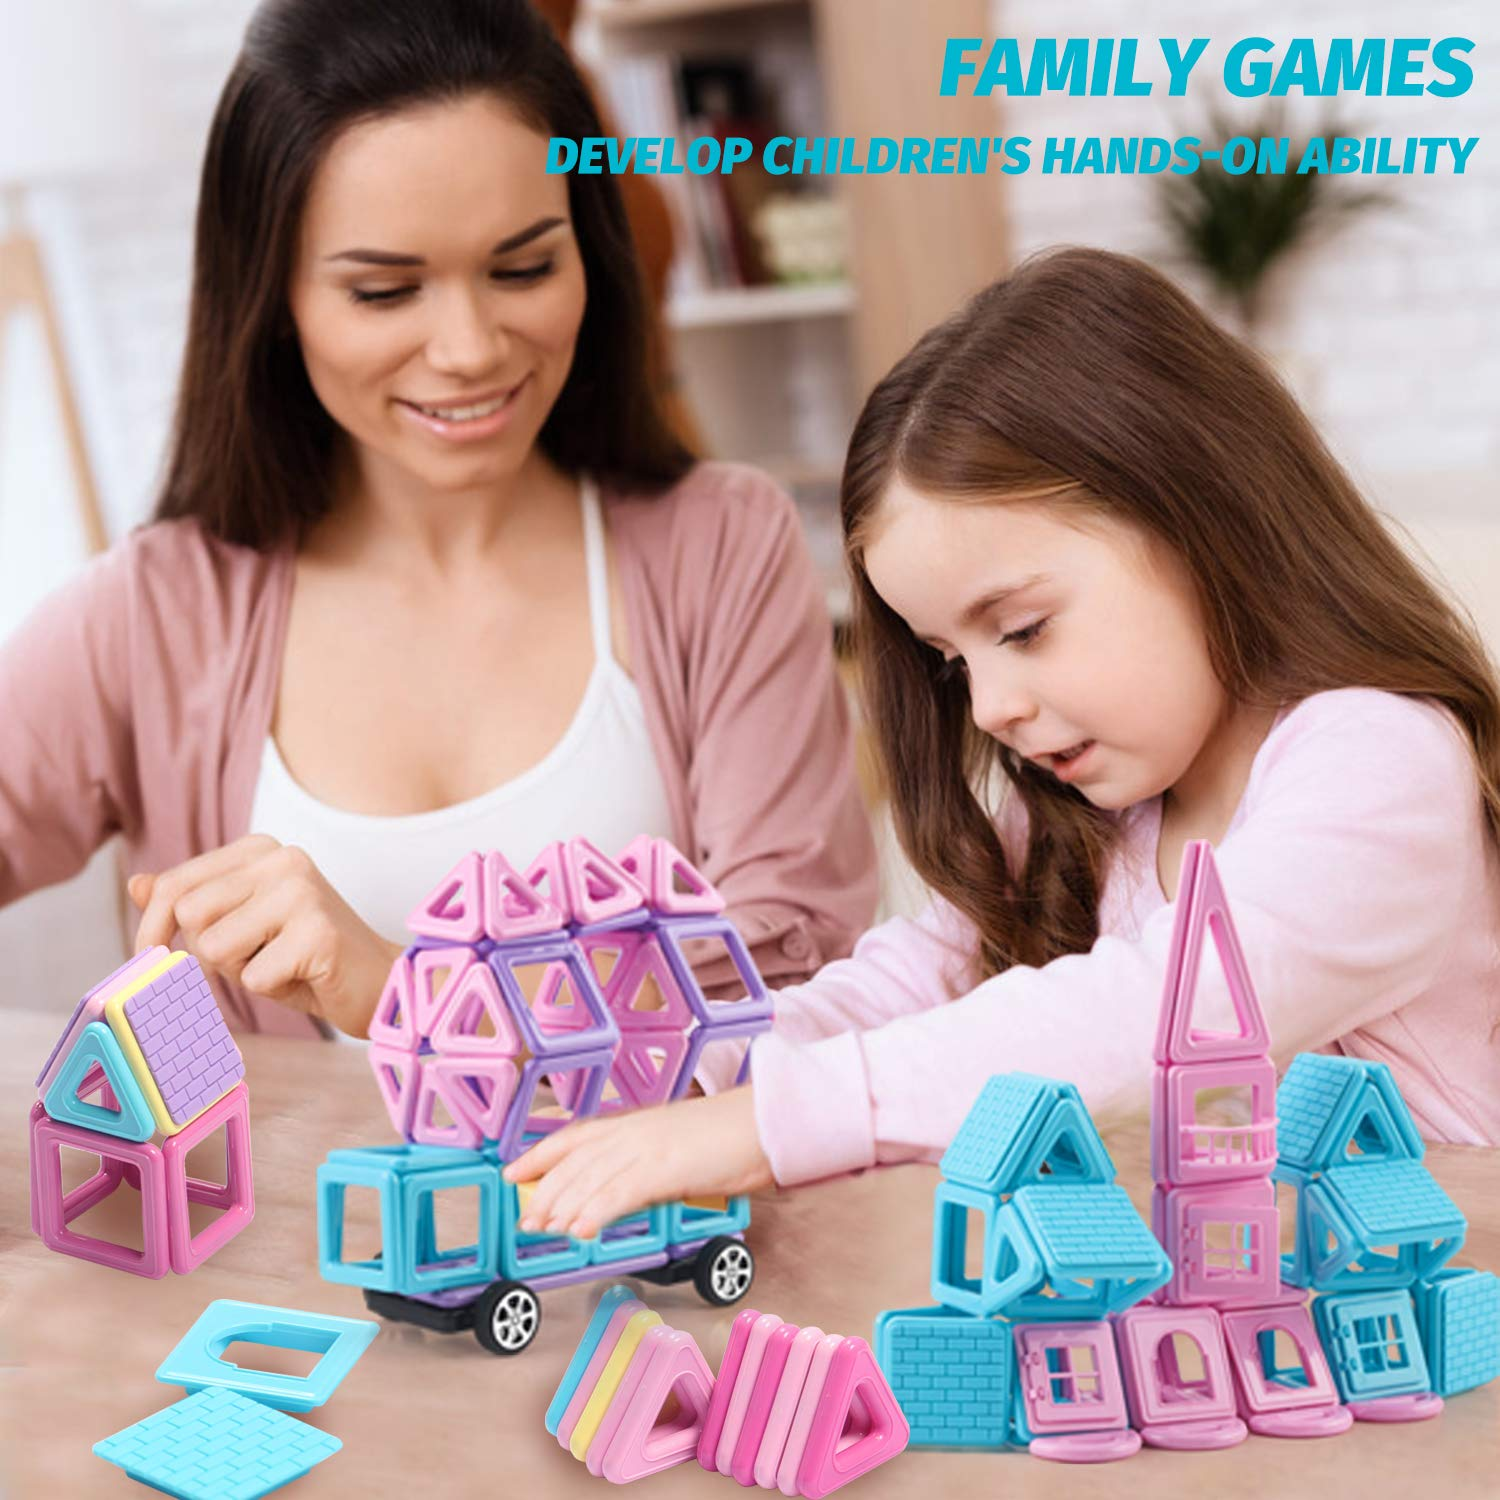 HOMOFY 124PCS Castle Magnetic Blocks Toys for Kids -3D Macaron Colors Learning & Development Building Blocks Figure Kits Toys for 3+ Years Old Girls Boys Toddlers by HOMOFY (Image #2)